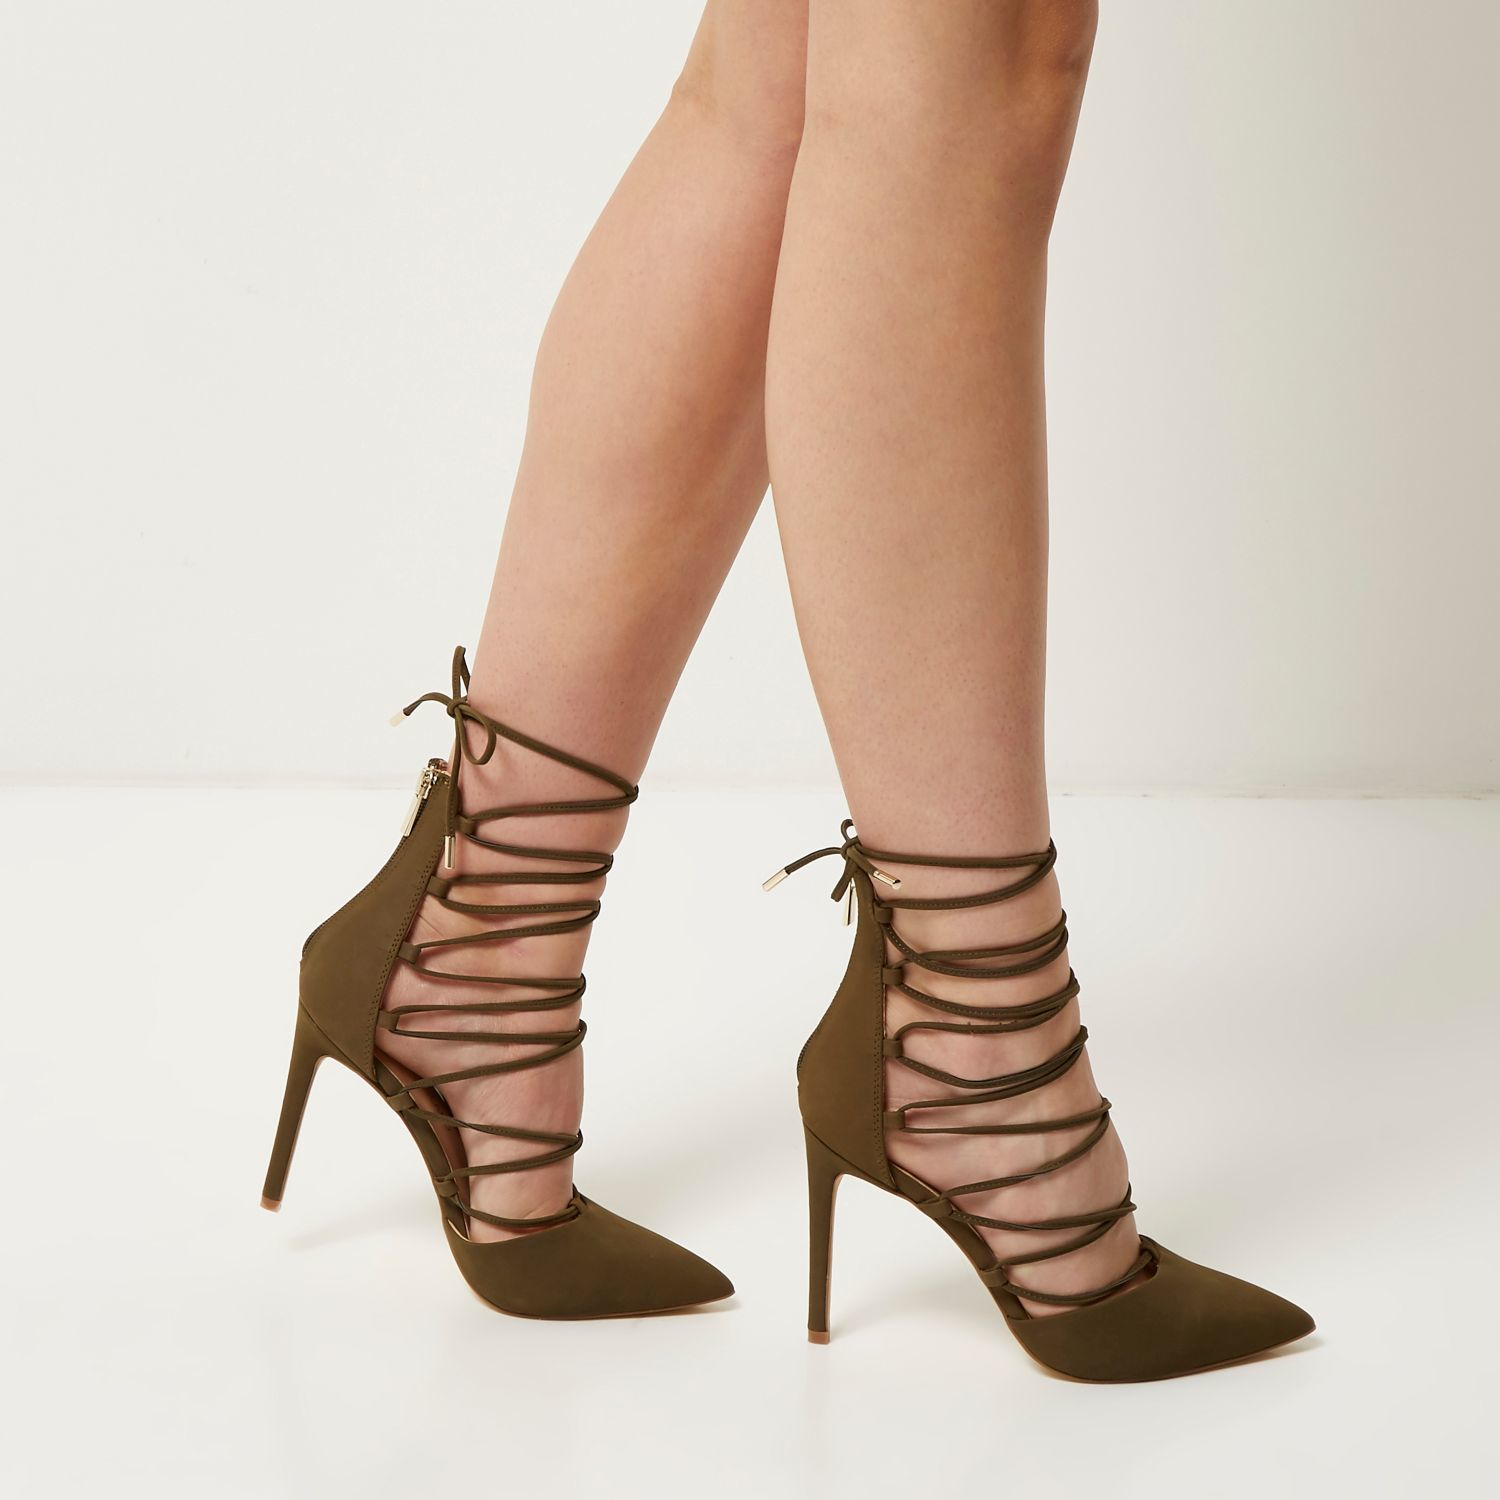 5d85dd0e9 Lyst - River Island Khaki Suede Lace Up Court Heels in Natural